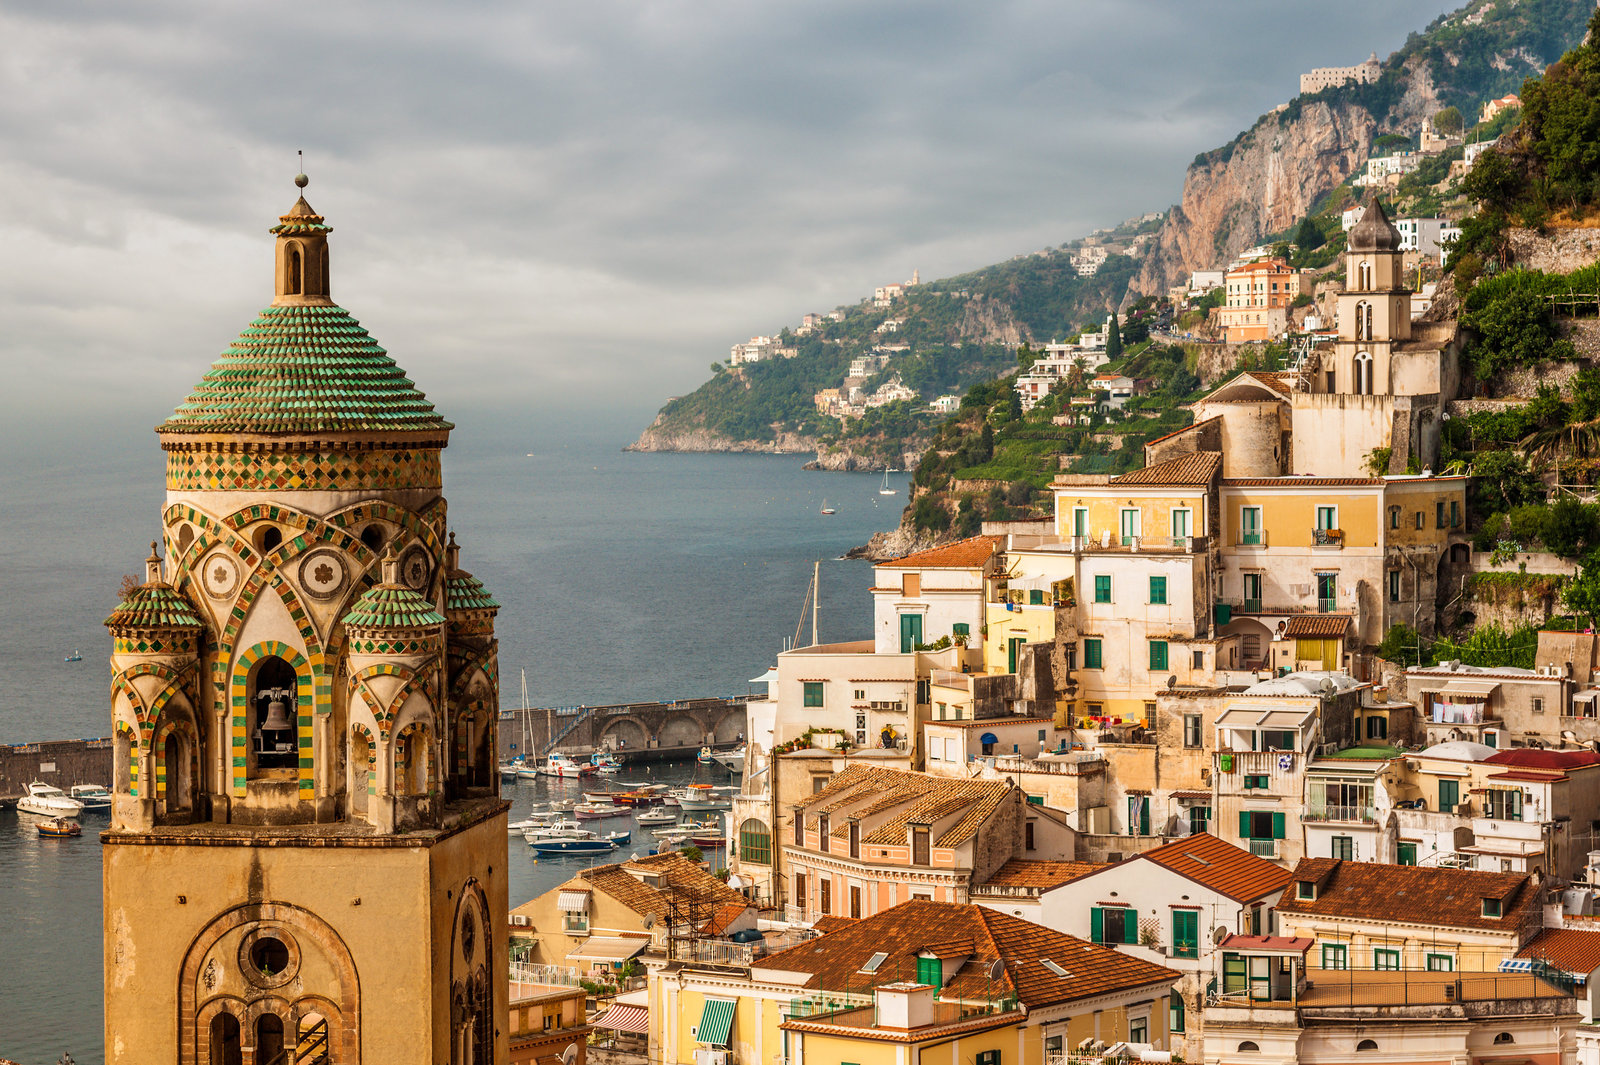 Amalfi city with bell tower of the Cathedra